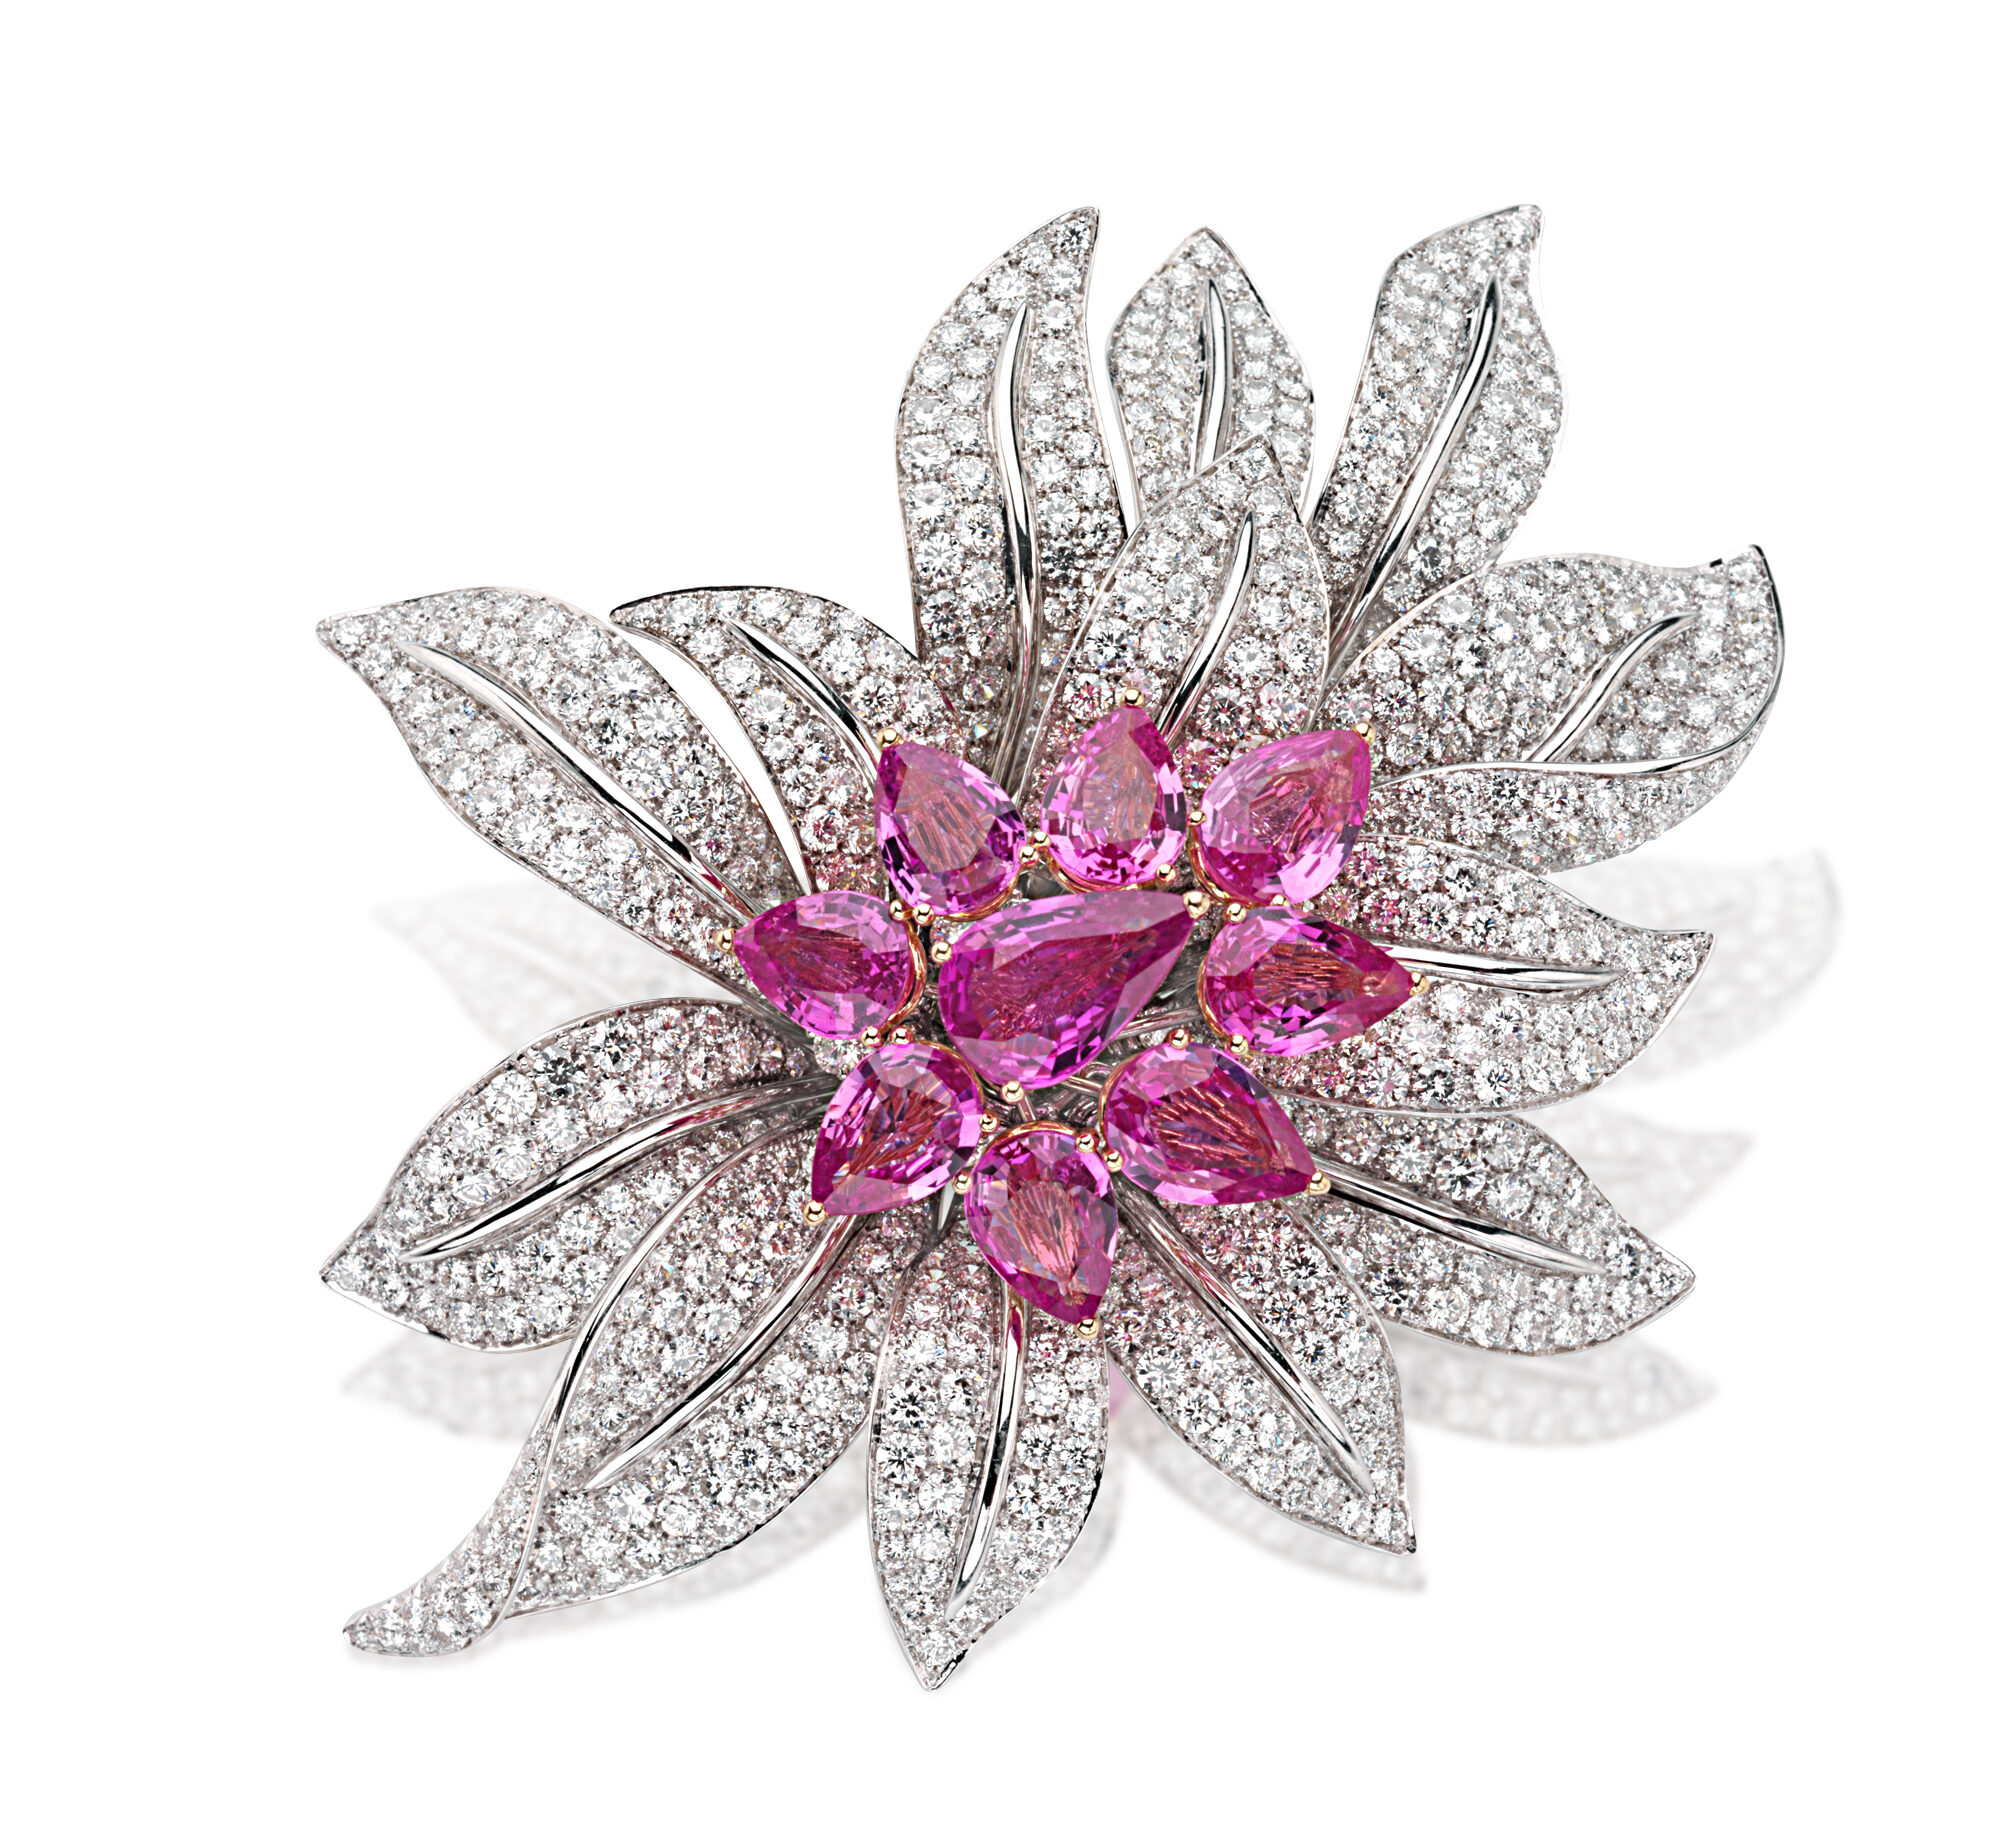 floral brooch with round diamonds and pear-shaped pink sapphires by Picchiotti